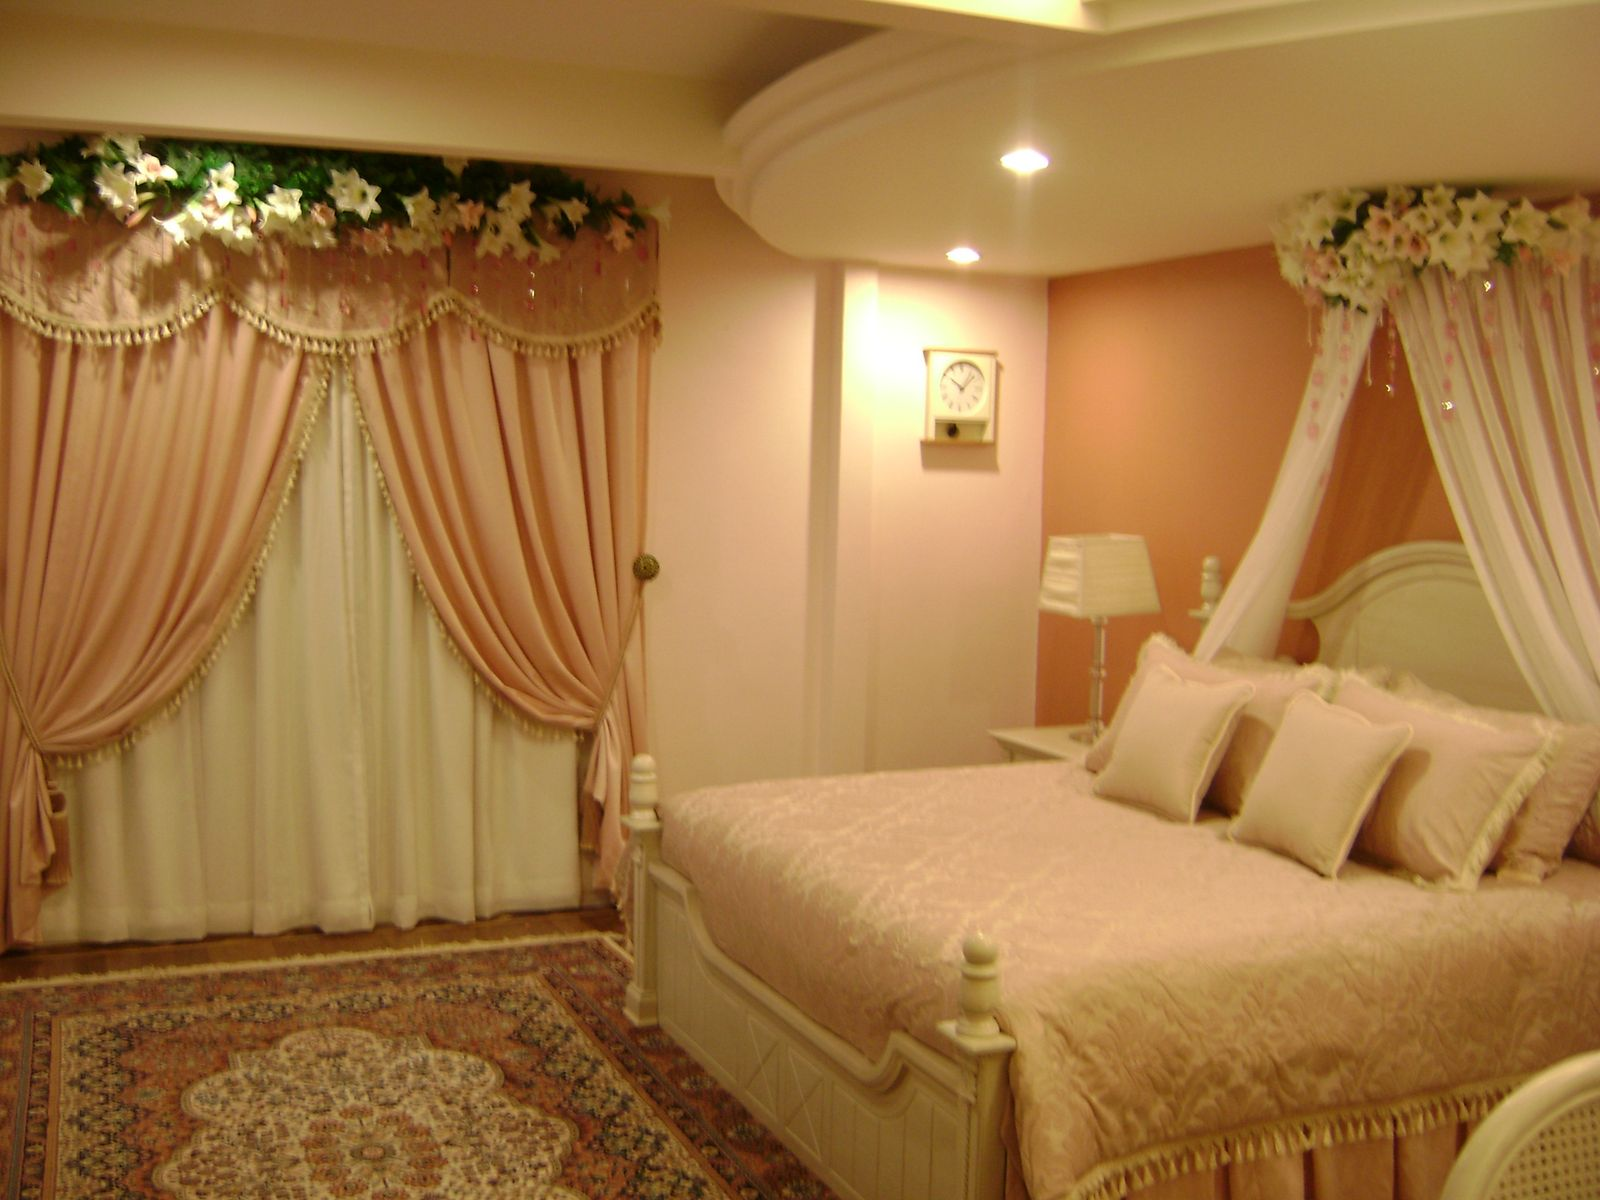 Girlsvilla wedding room decoration for Marriage bed decoration photos